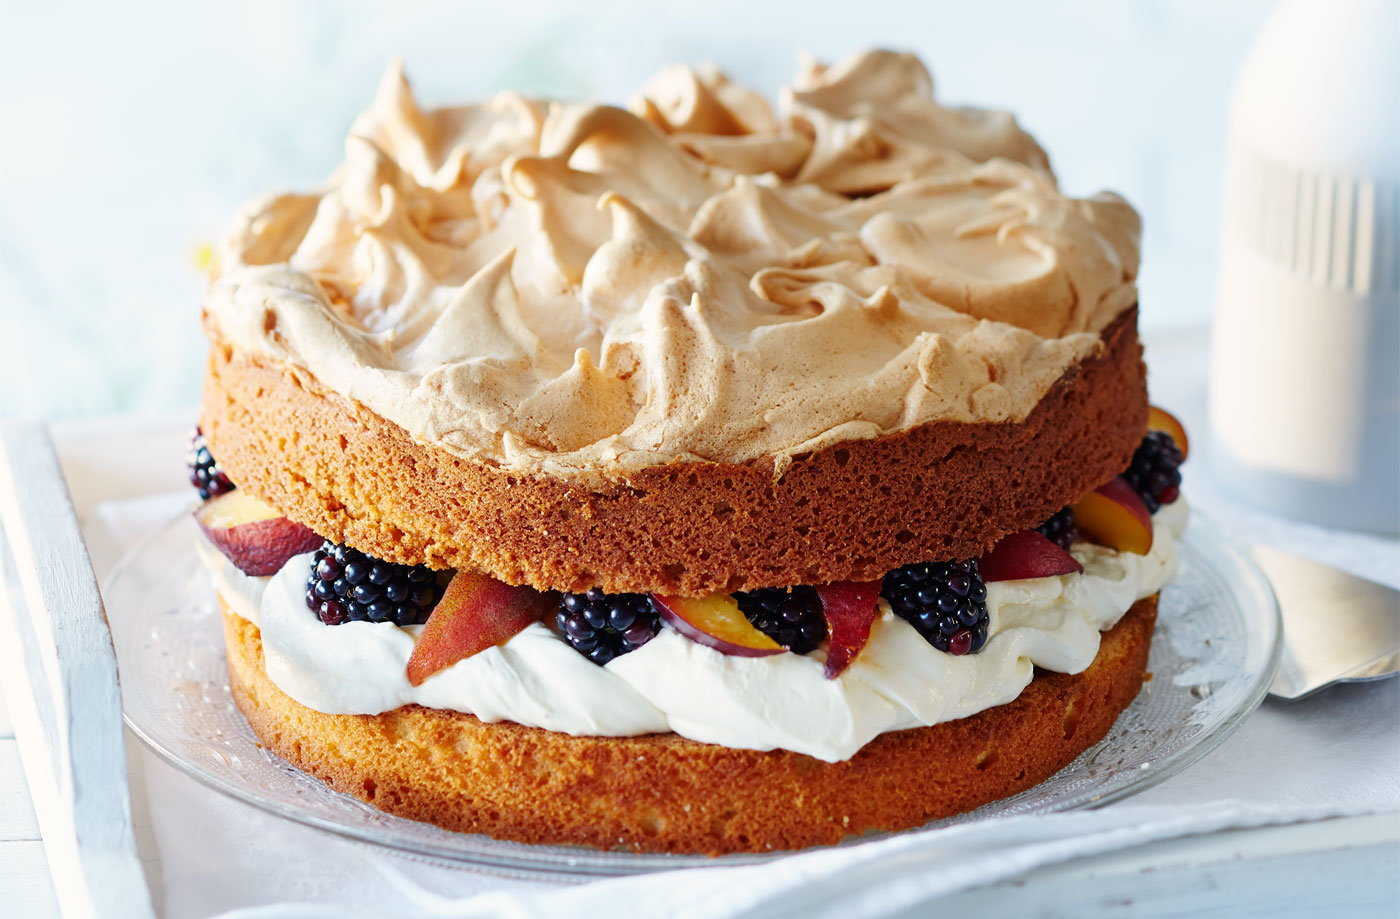 Peach and blackberry meringue crown cake  recipe